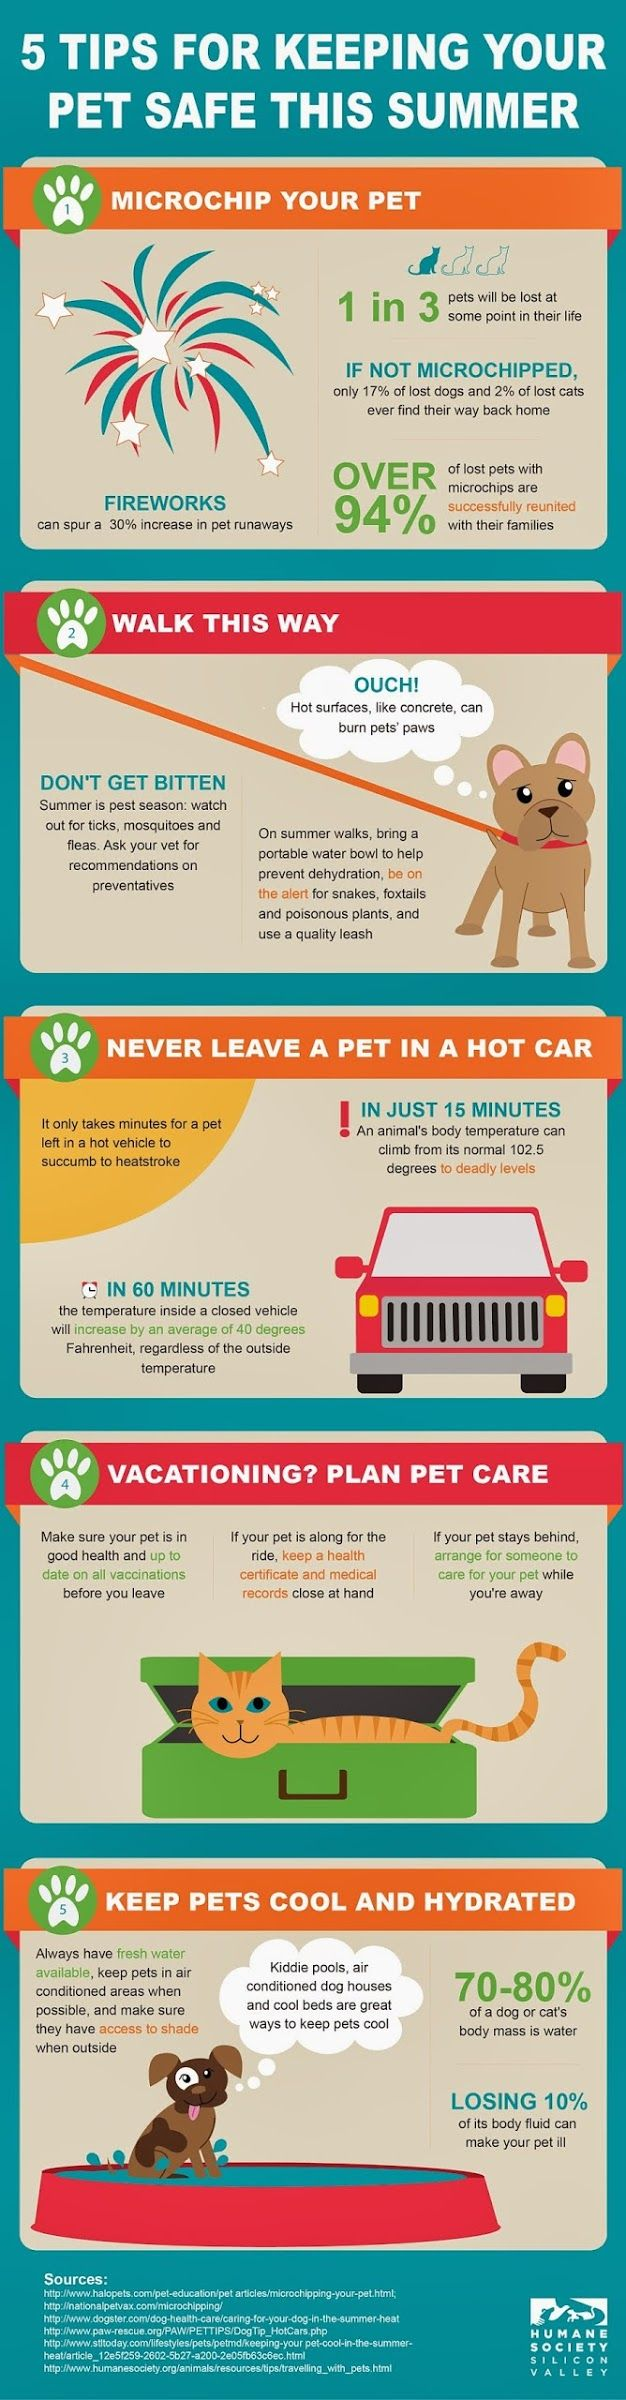 5 Tips for Keeping Your Pet Safe This Summer #Infographic